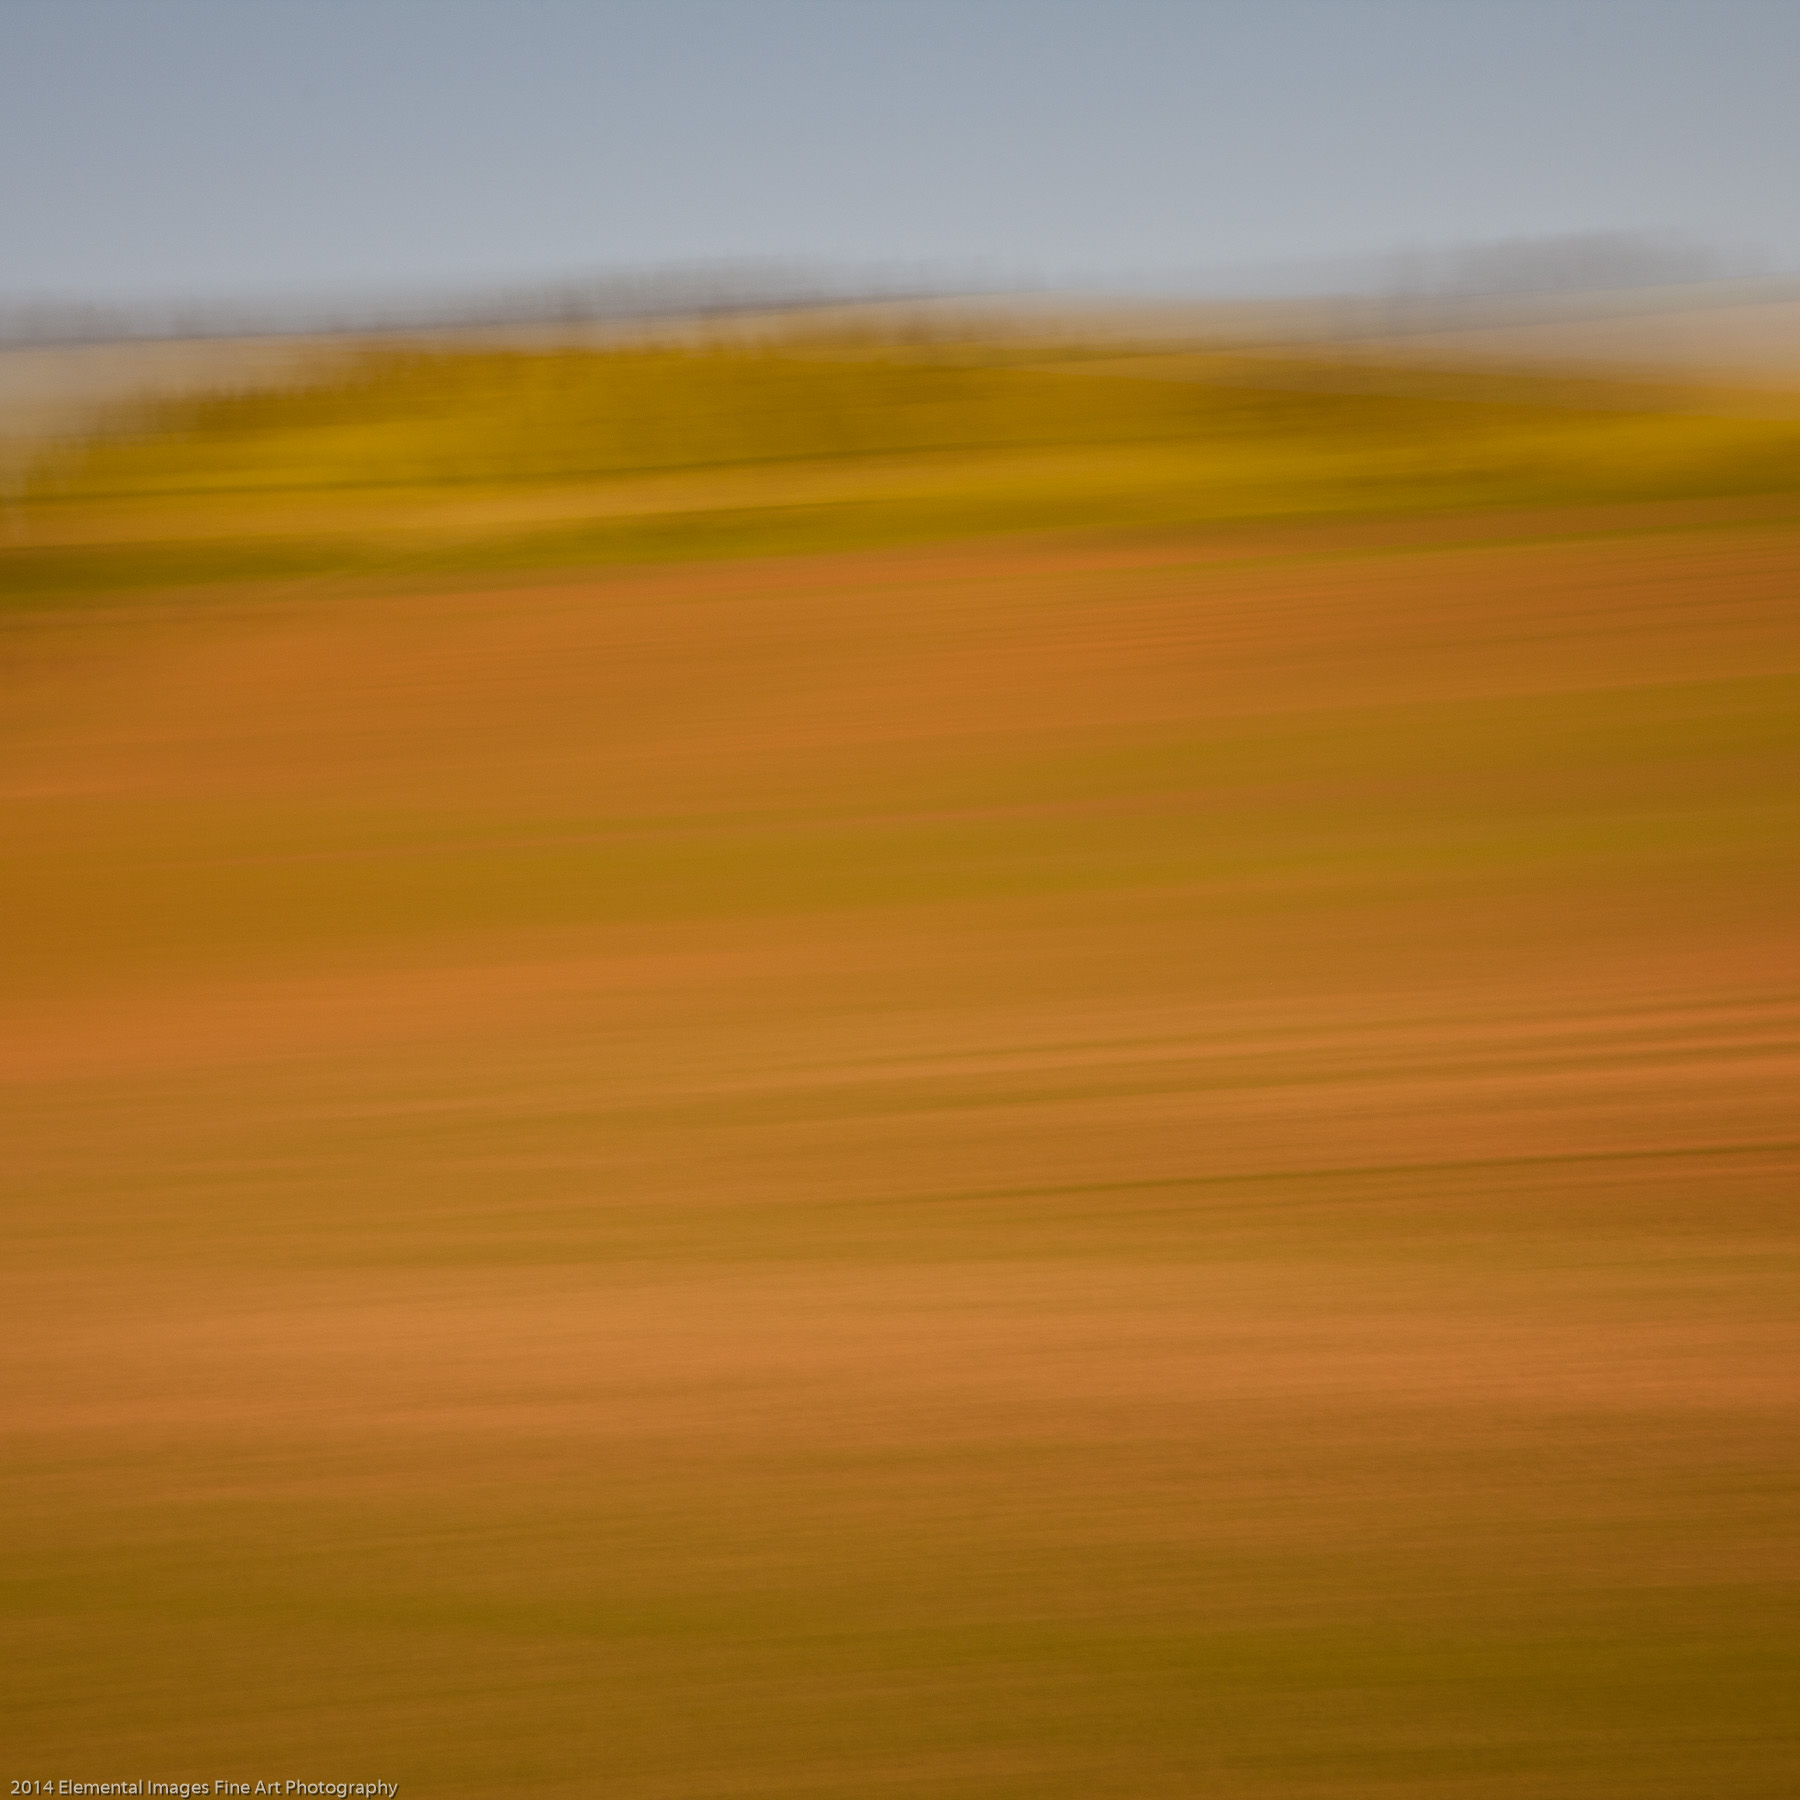 Palouse LXXII | The Palouse | WA | USA - © 2014 Elemental Images Fine Art Photography - All Rights Reserved Worldwide